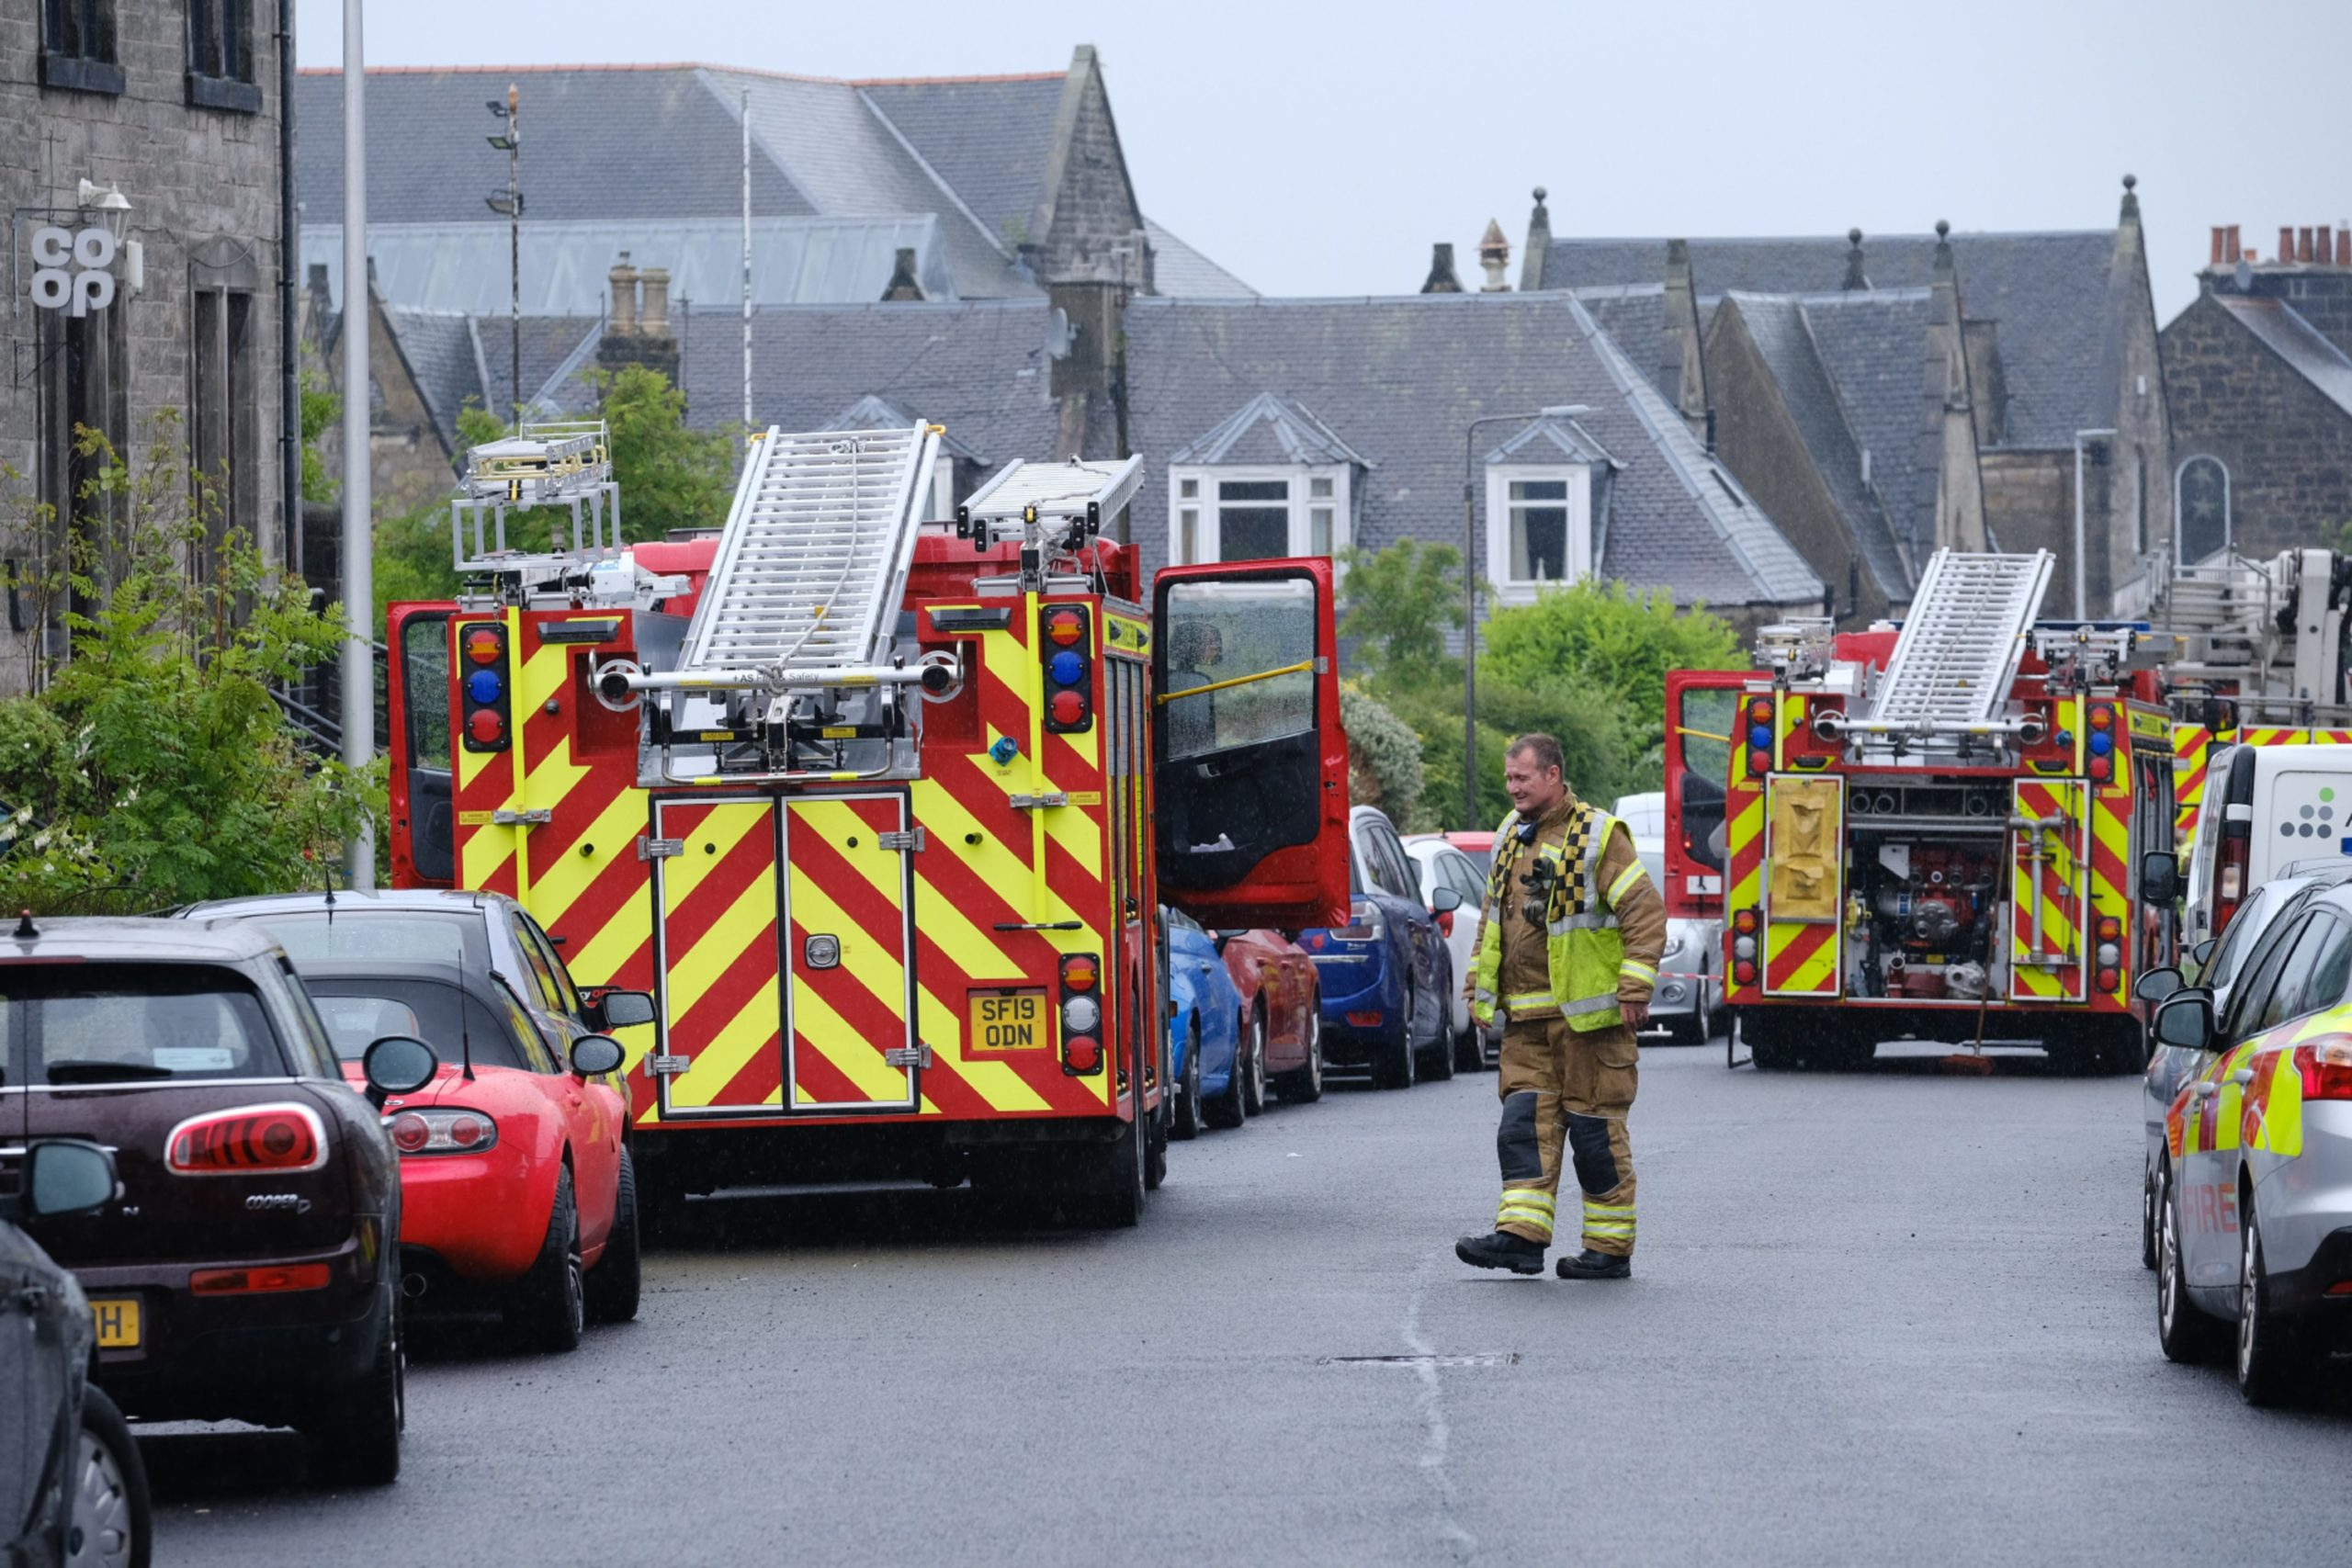 Eight appliances were in attendance after suspected gas explosion.